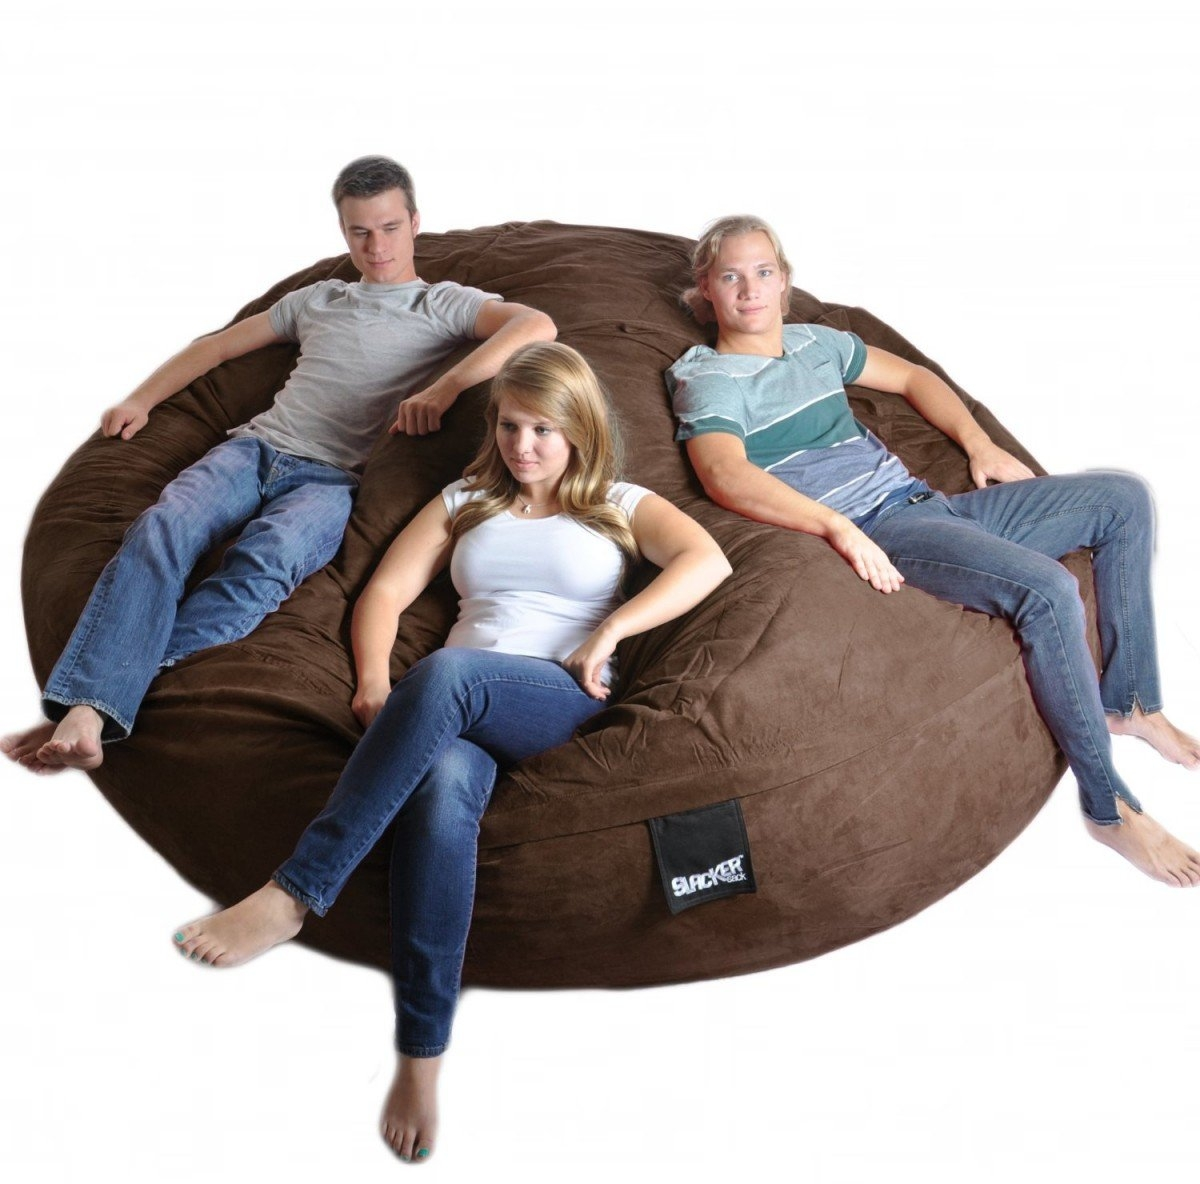 Ordinaire 8 Feet Round Navy Blue XXXL Foam Bean Bag Couch Microfiber Suede Giant  SLACKER Sack Like